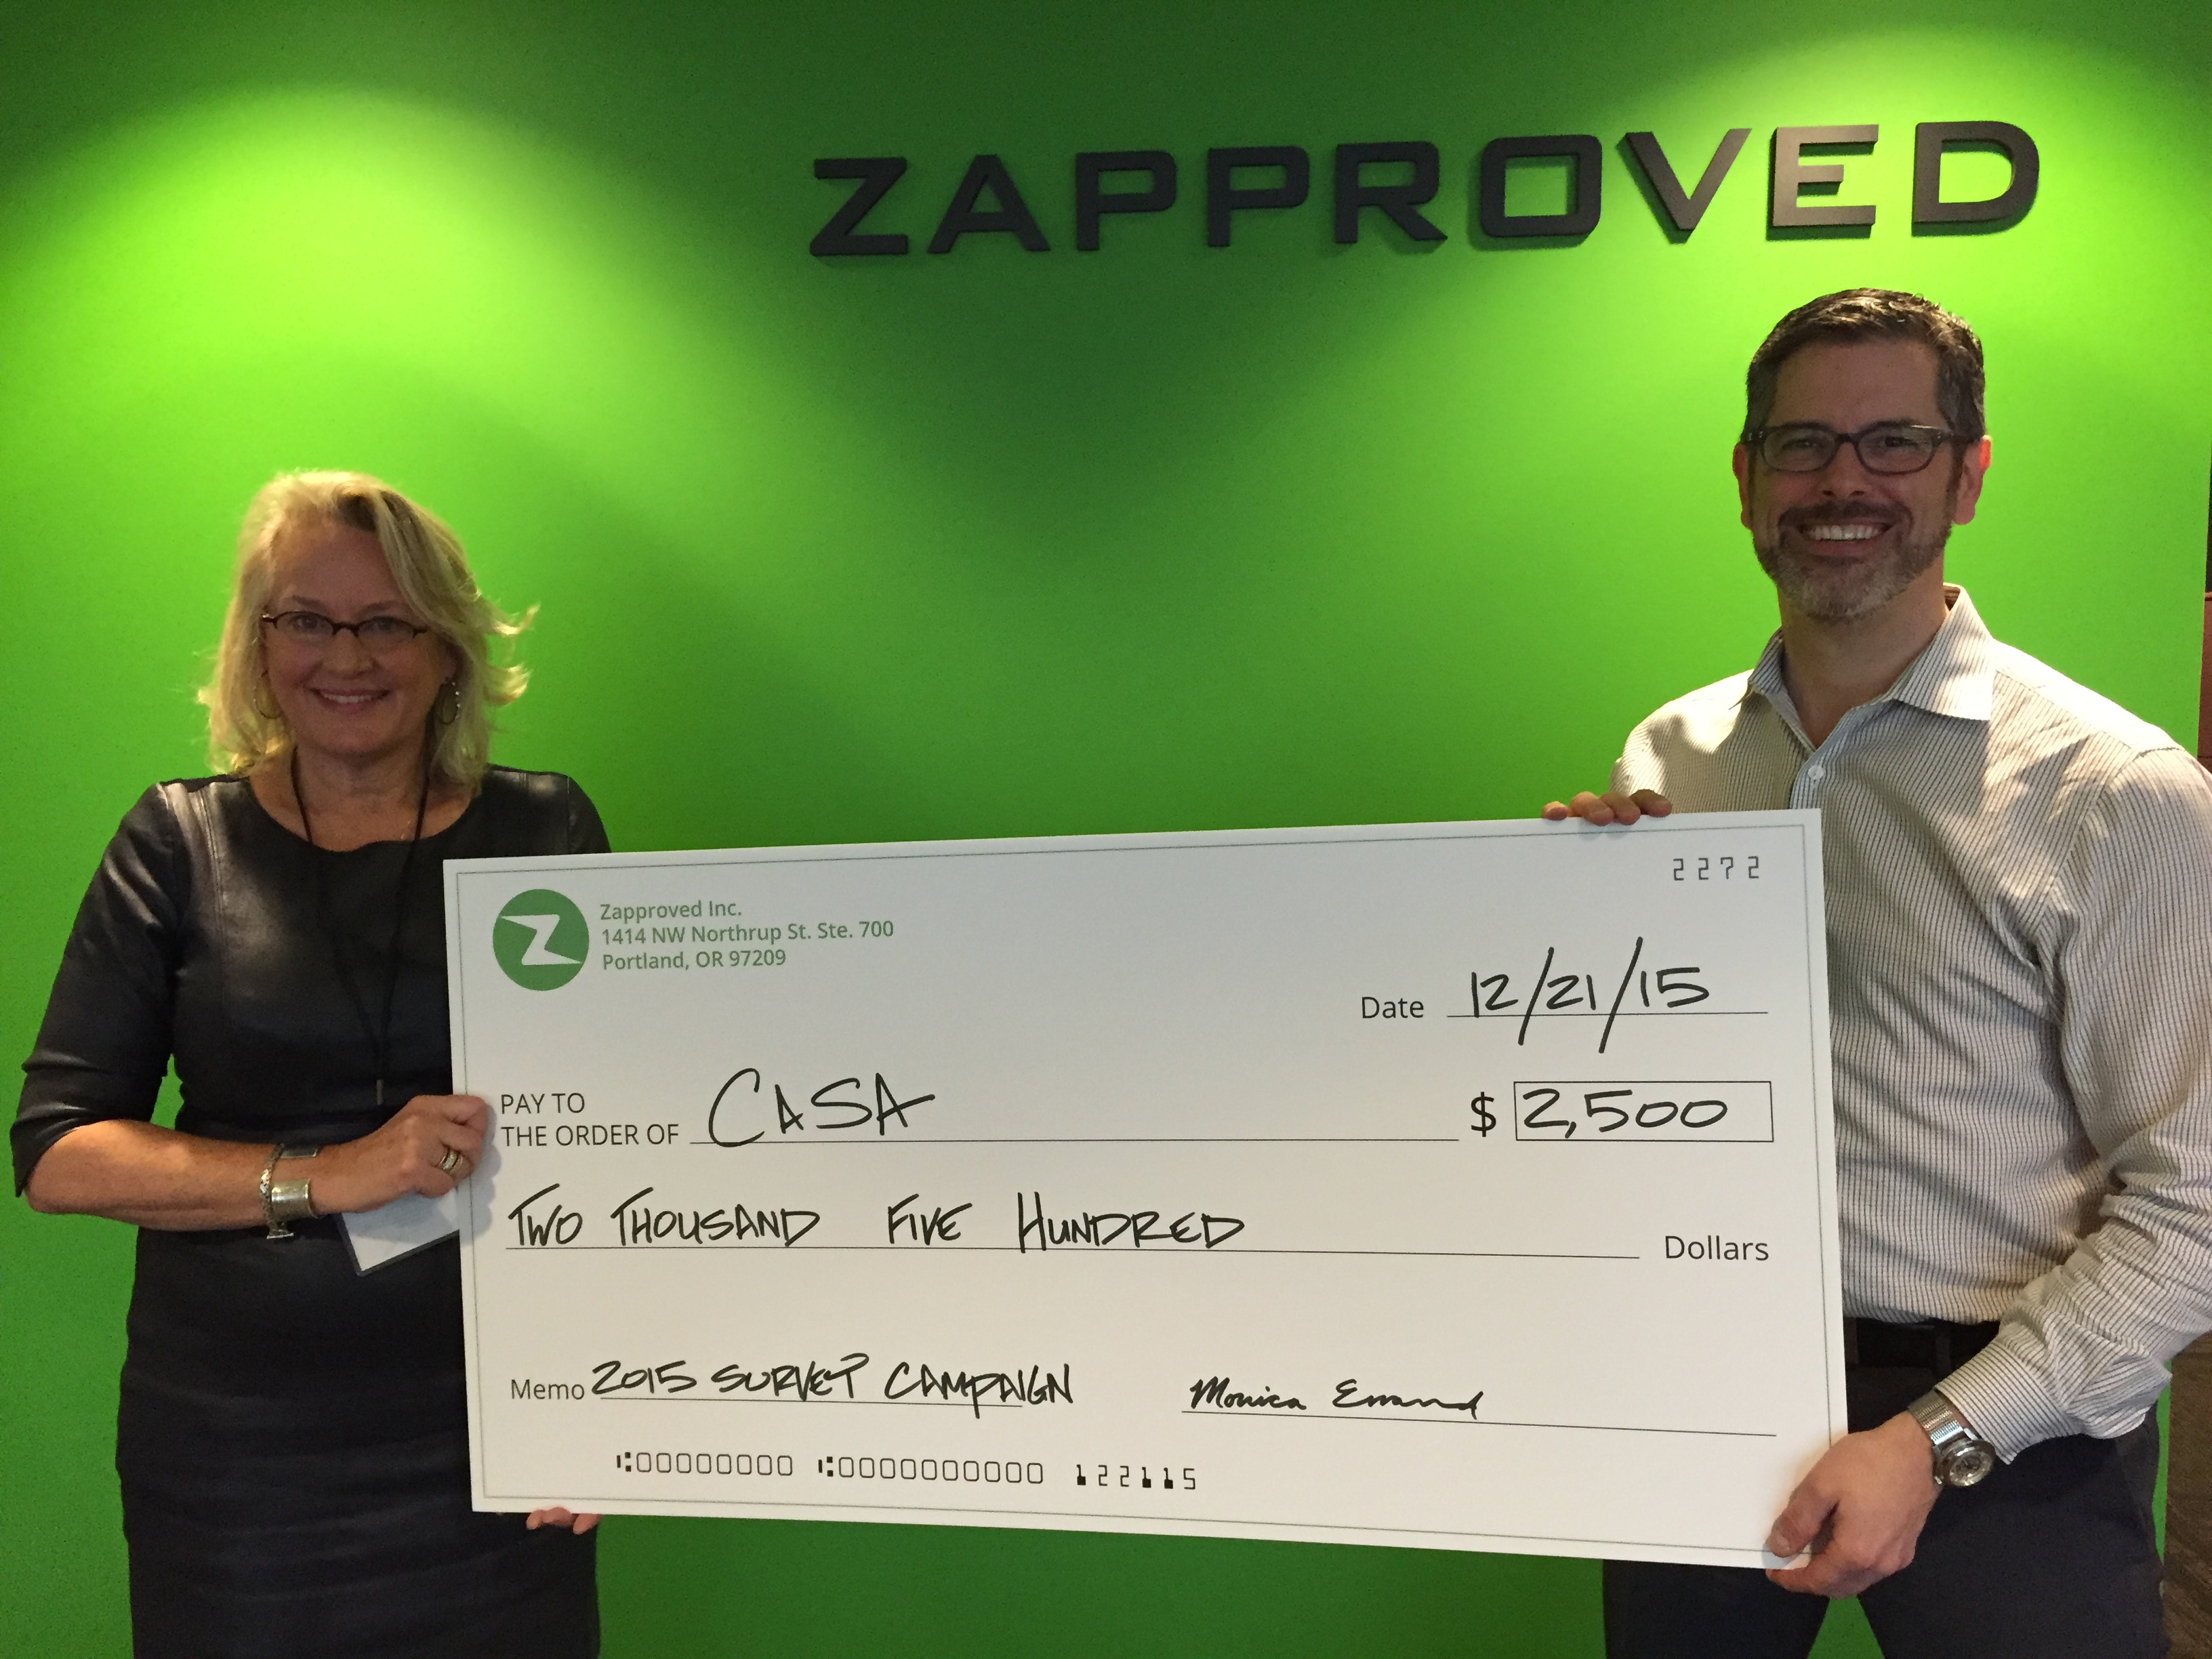 Pictured: Betsy Stark Miller, Executive Director, CASA for Children and Chris Bright, VP of Marketing, Zapproved